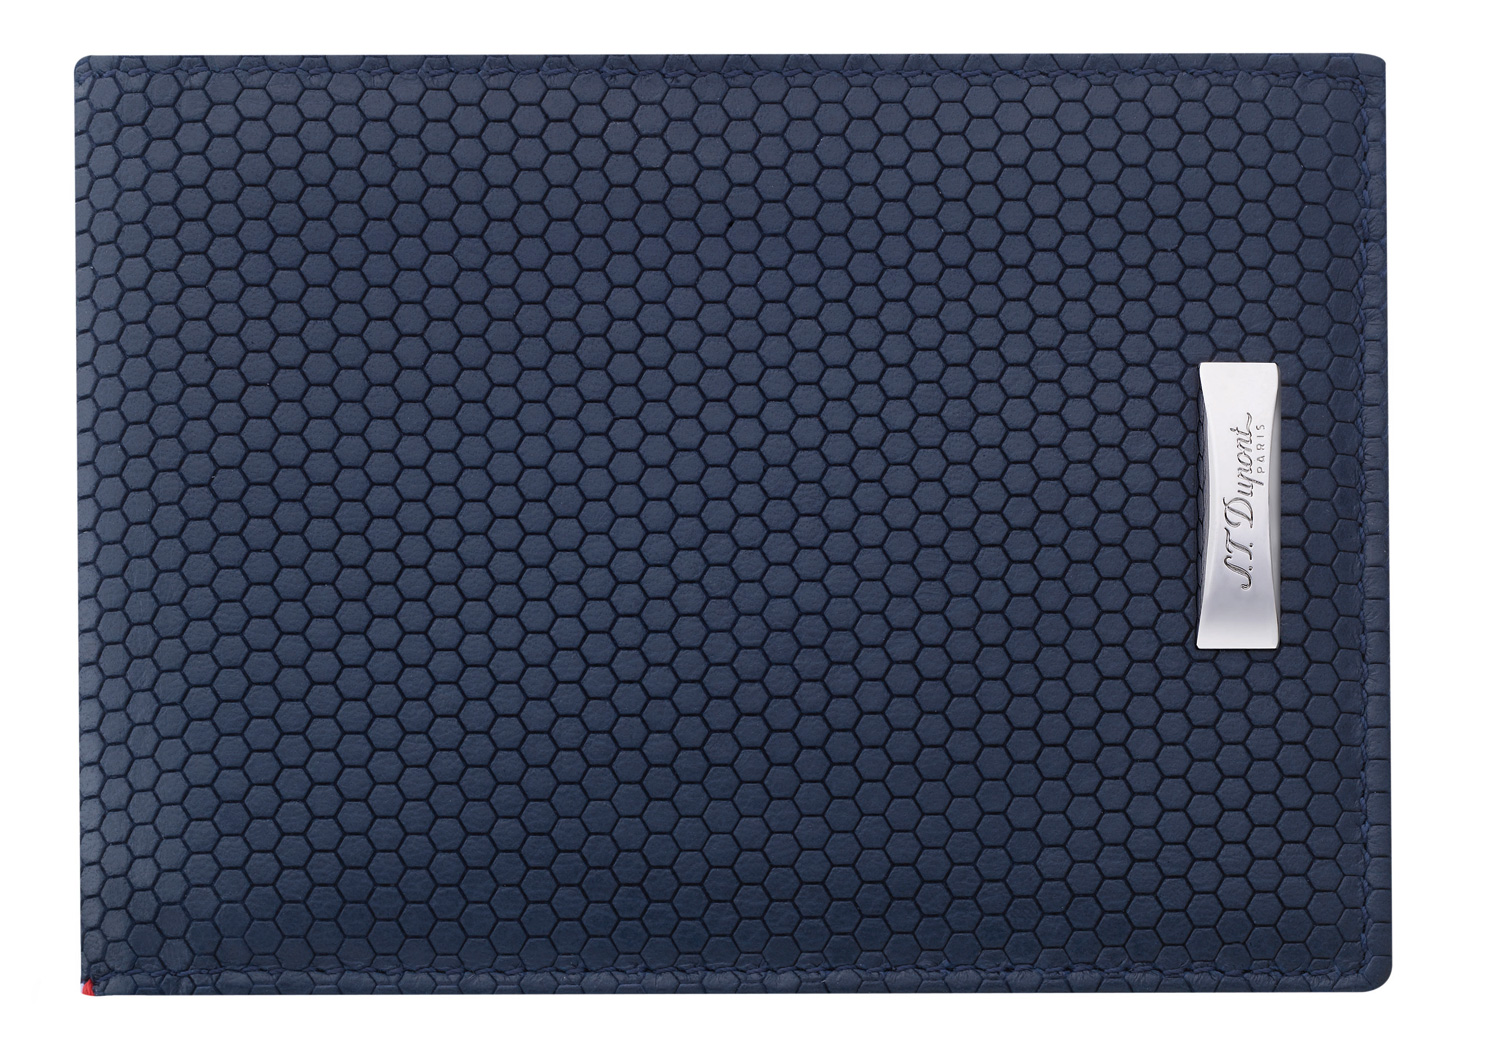 The Tony Stark wallet is in blue Line D Soft Diamond leather